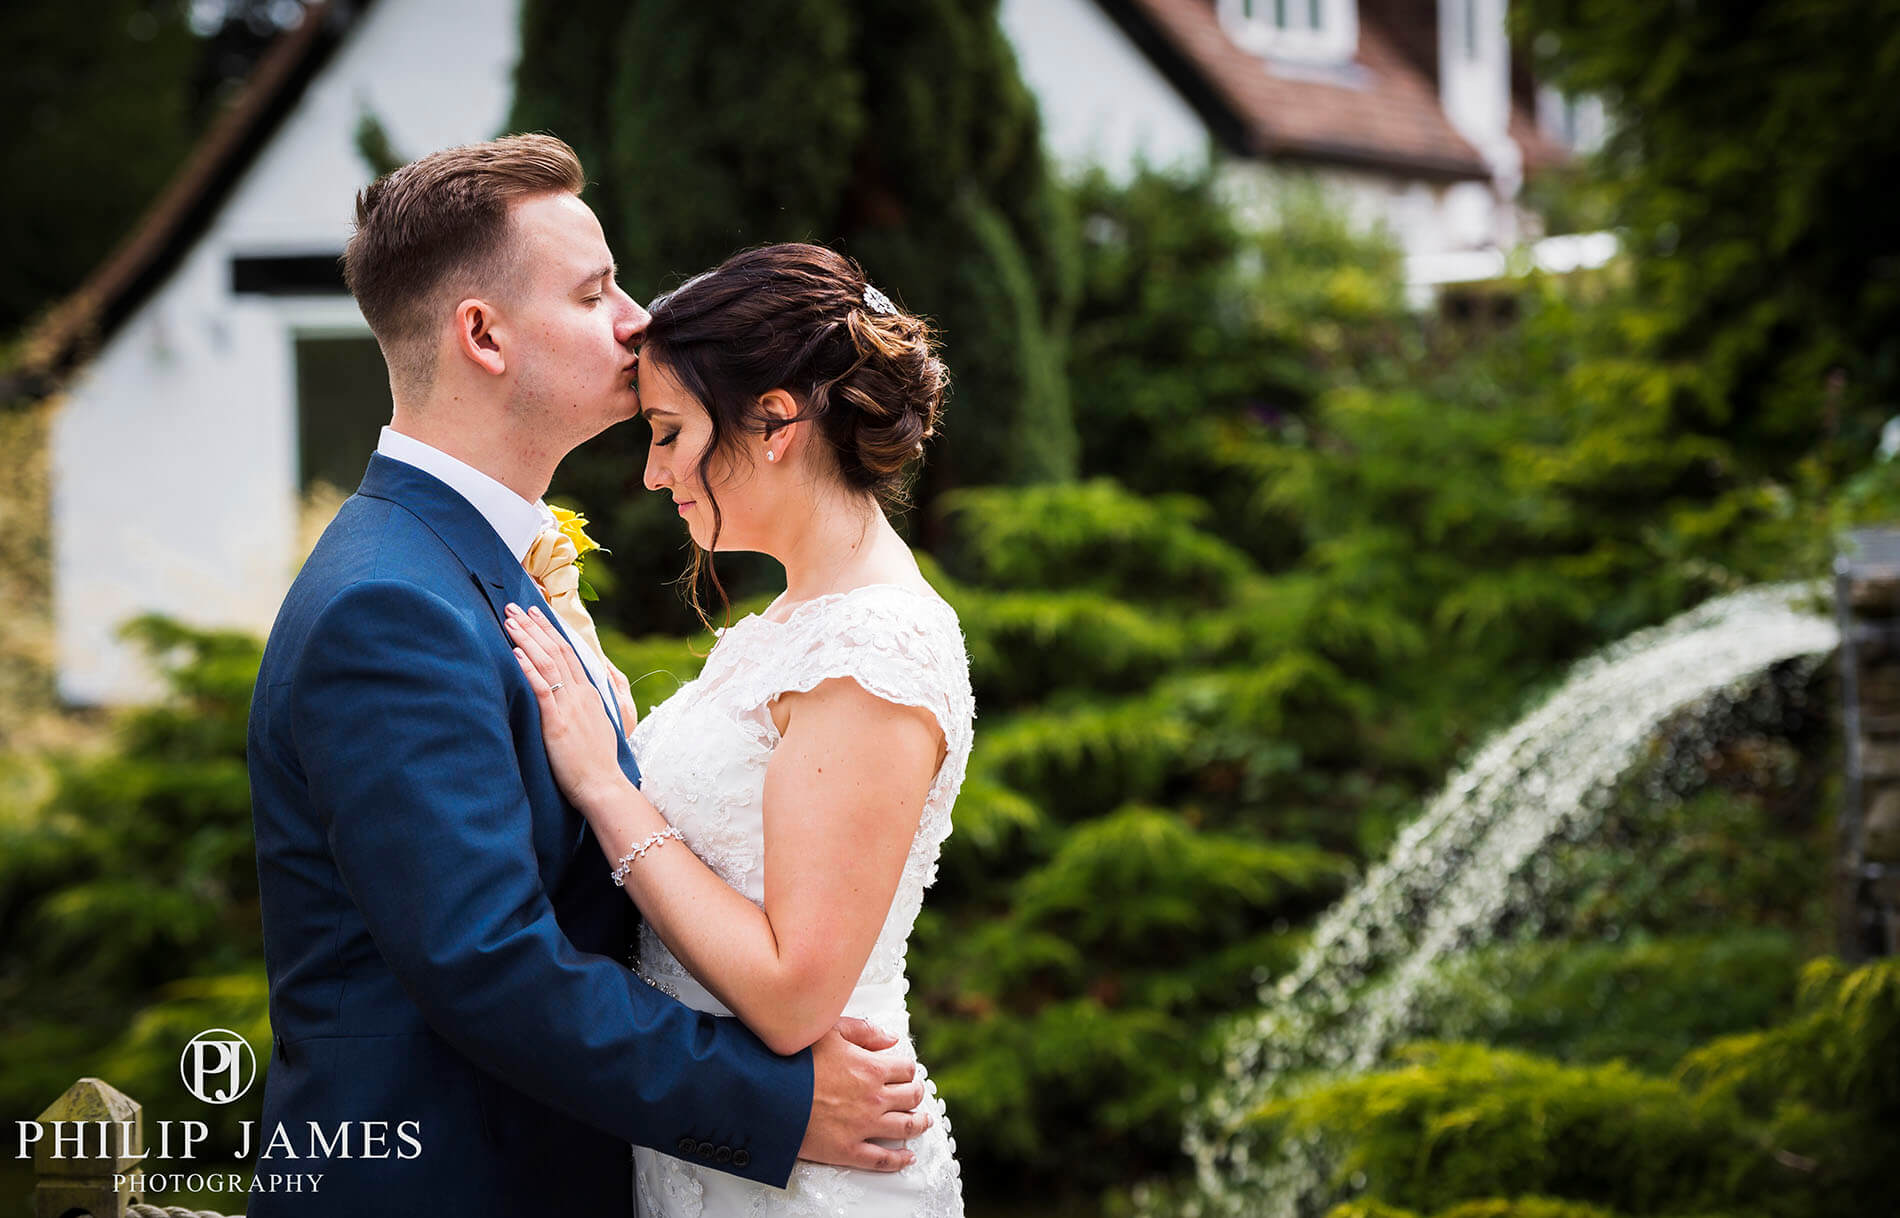 Birmingham Wedding Photographer - Philip James Photography based in Solihull (31 of 68)